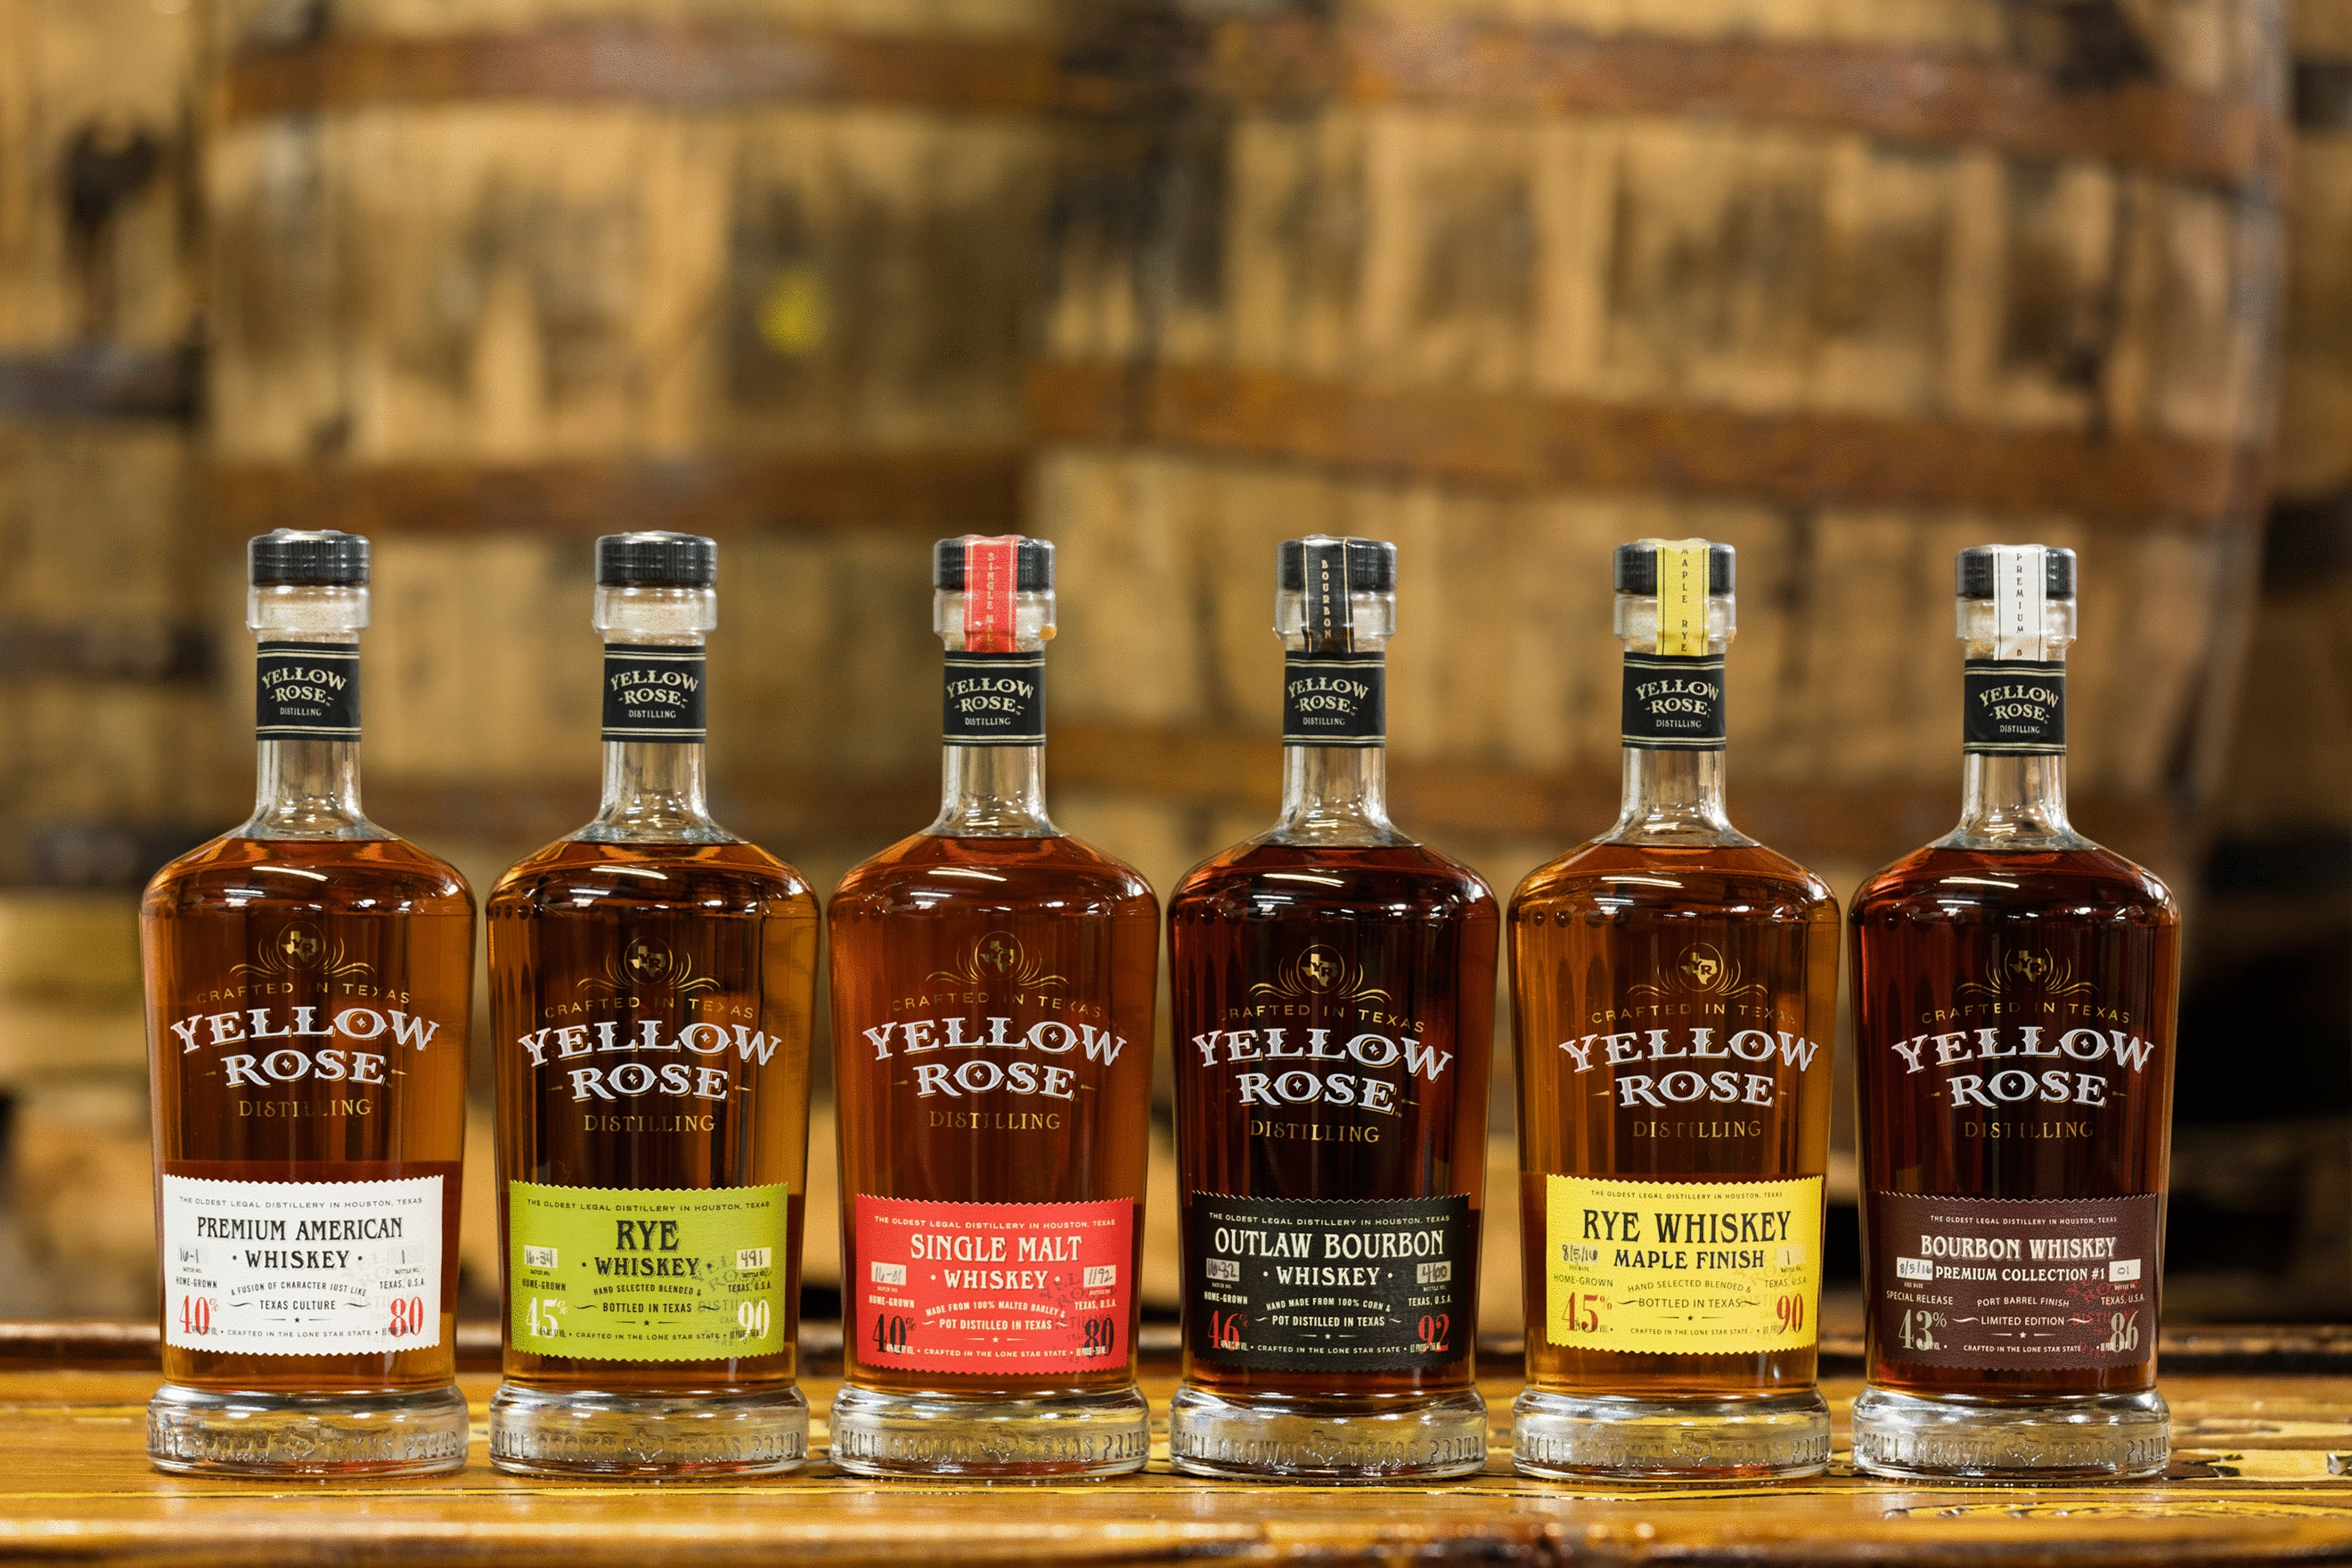 Spain's Zamora Company invests in Houston's Yellow Rose Distilling